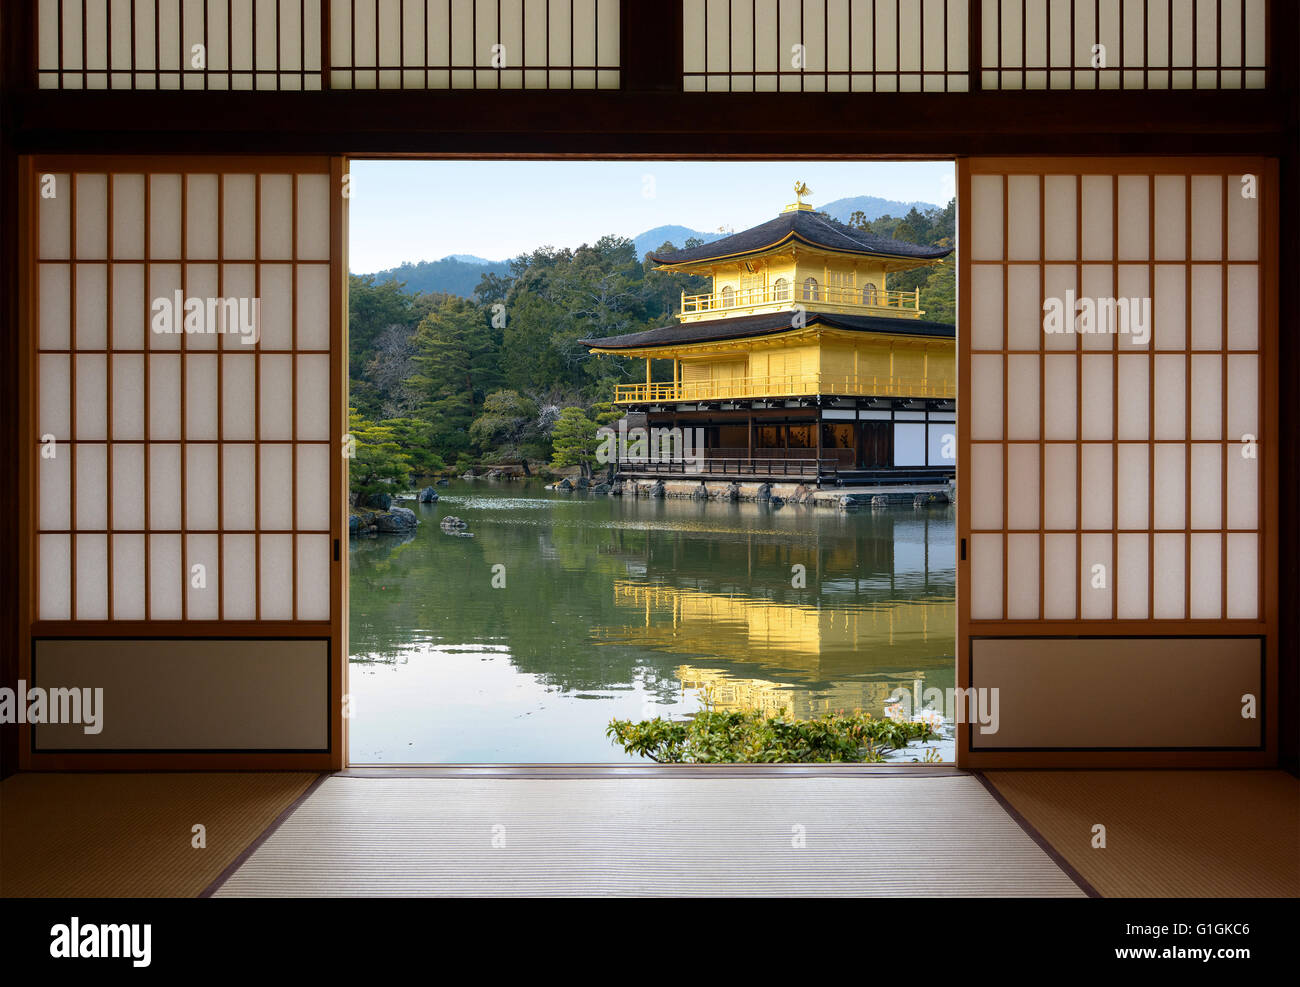 Etonnant View Of A Beautiful Japanese Golden Temple And Pond Garden Seen Through  Open Rice Paper Doors